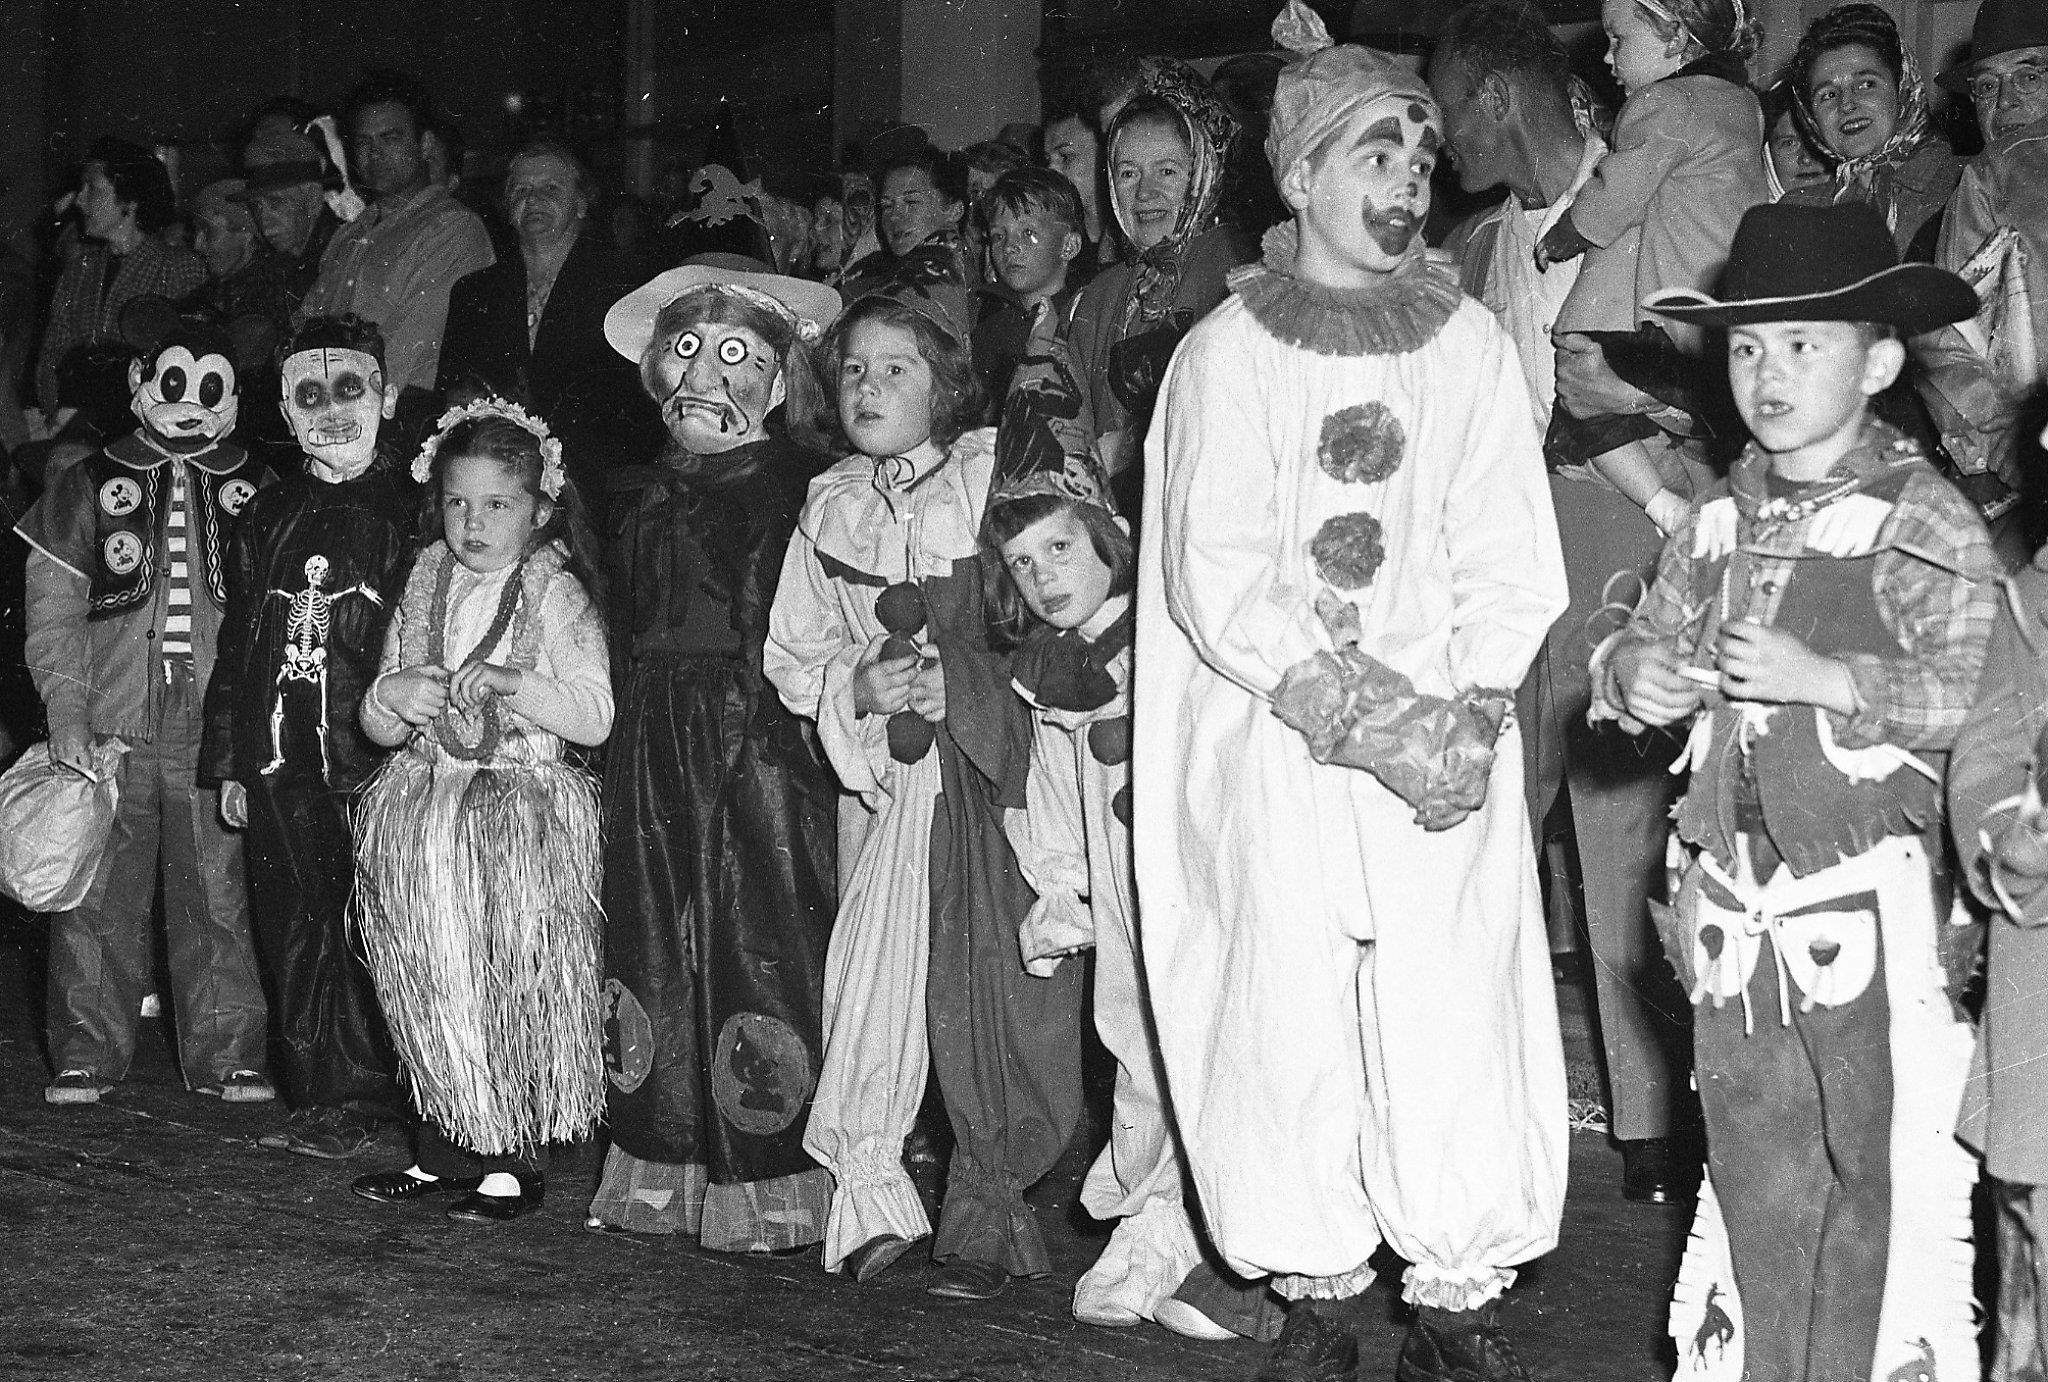 simple to sexy: s.f.'s halloween costumes through the ages